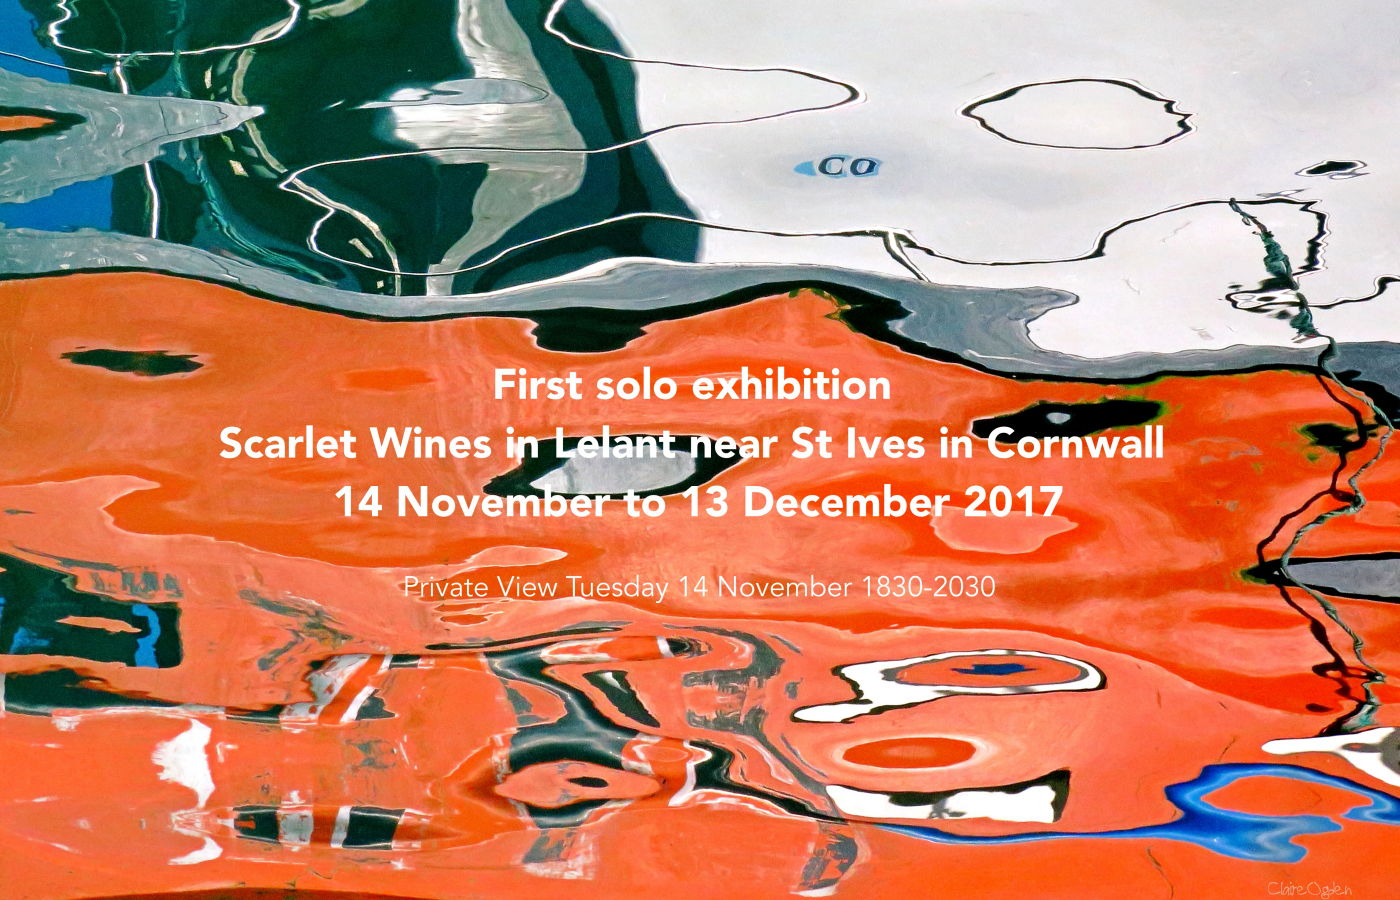 solo exhibition at Scarlet Wines in 2017